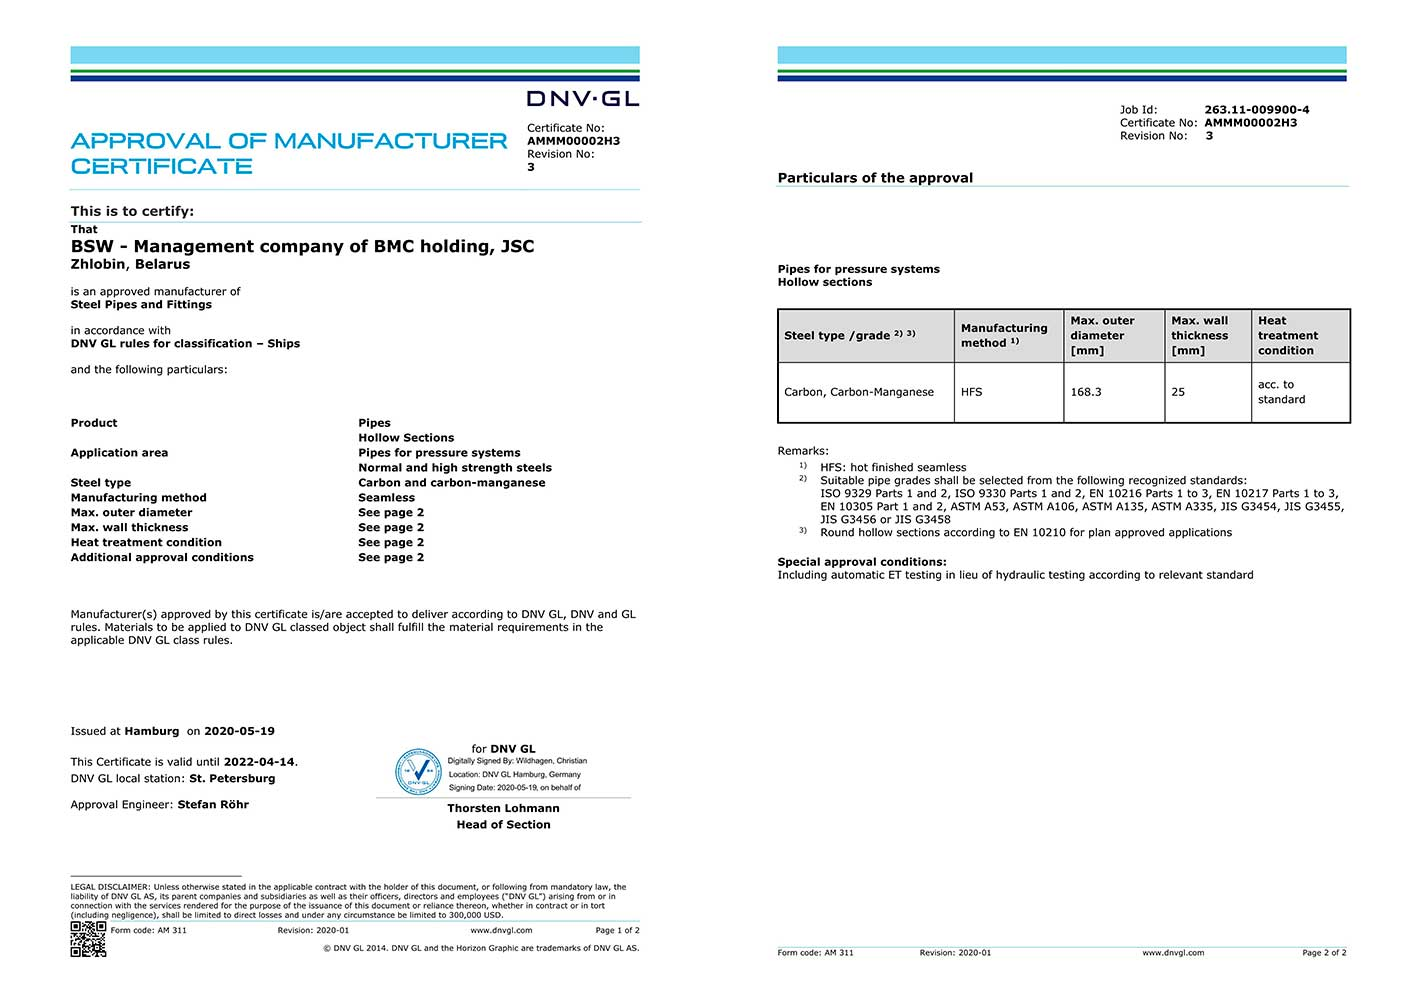 "Certificate of conformity № АММ00002H3(DNV, Norway) for manufacture of seamless hot-rolled pipes for shipbuilding from carbon and carbon – manganese steel grades of diameter up to 168, 3 mm and wall thickness up to 25mm according to DNV GL Rules  for classification ""Ships"" and standard EN 10210"